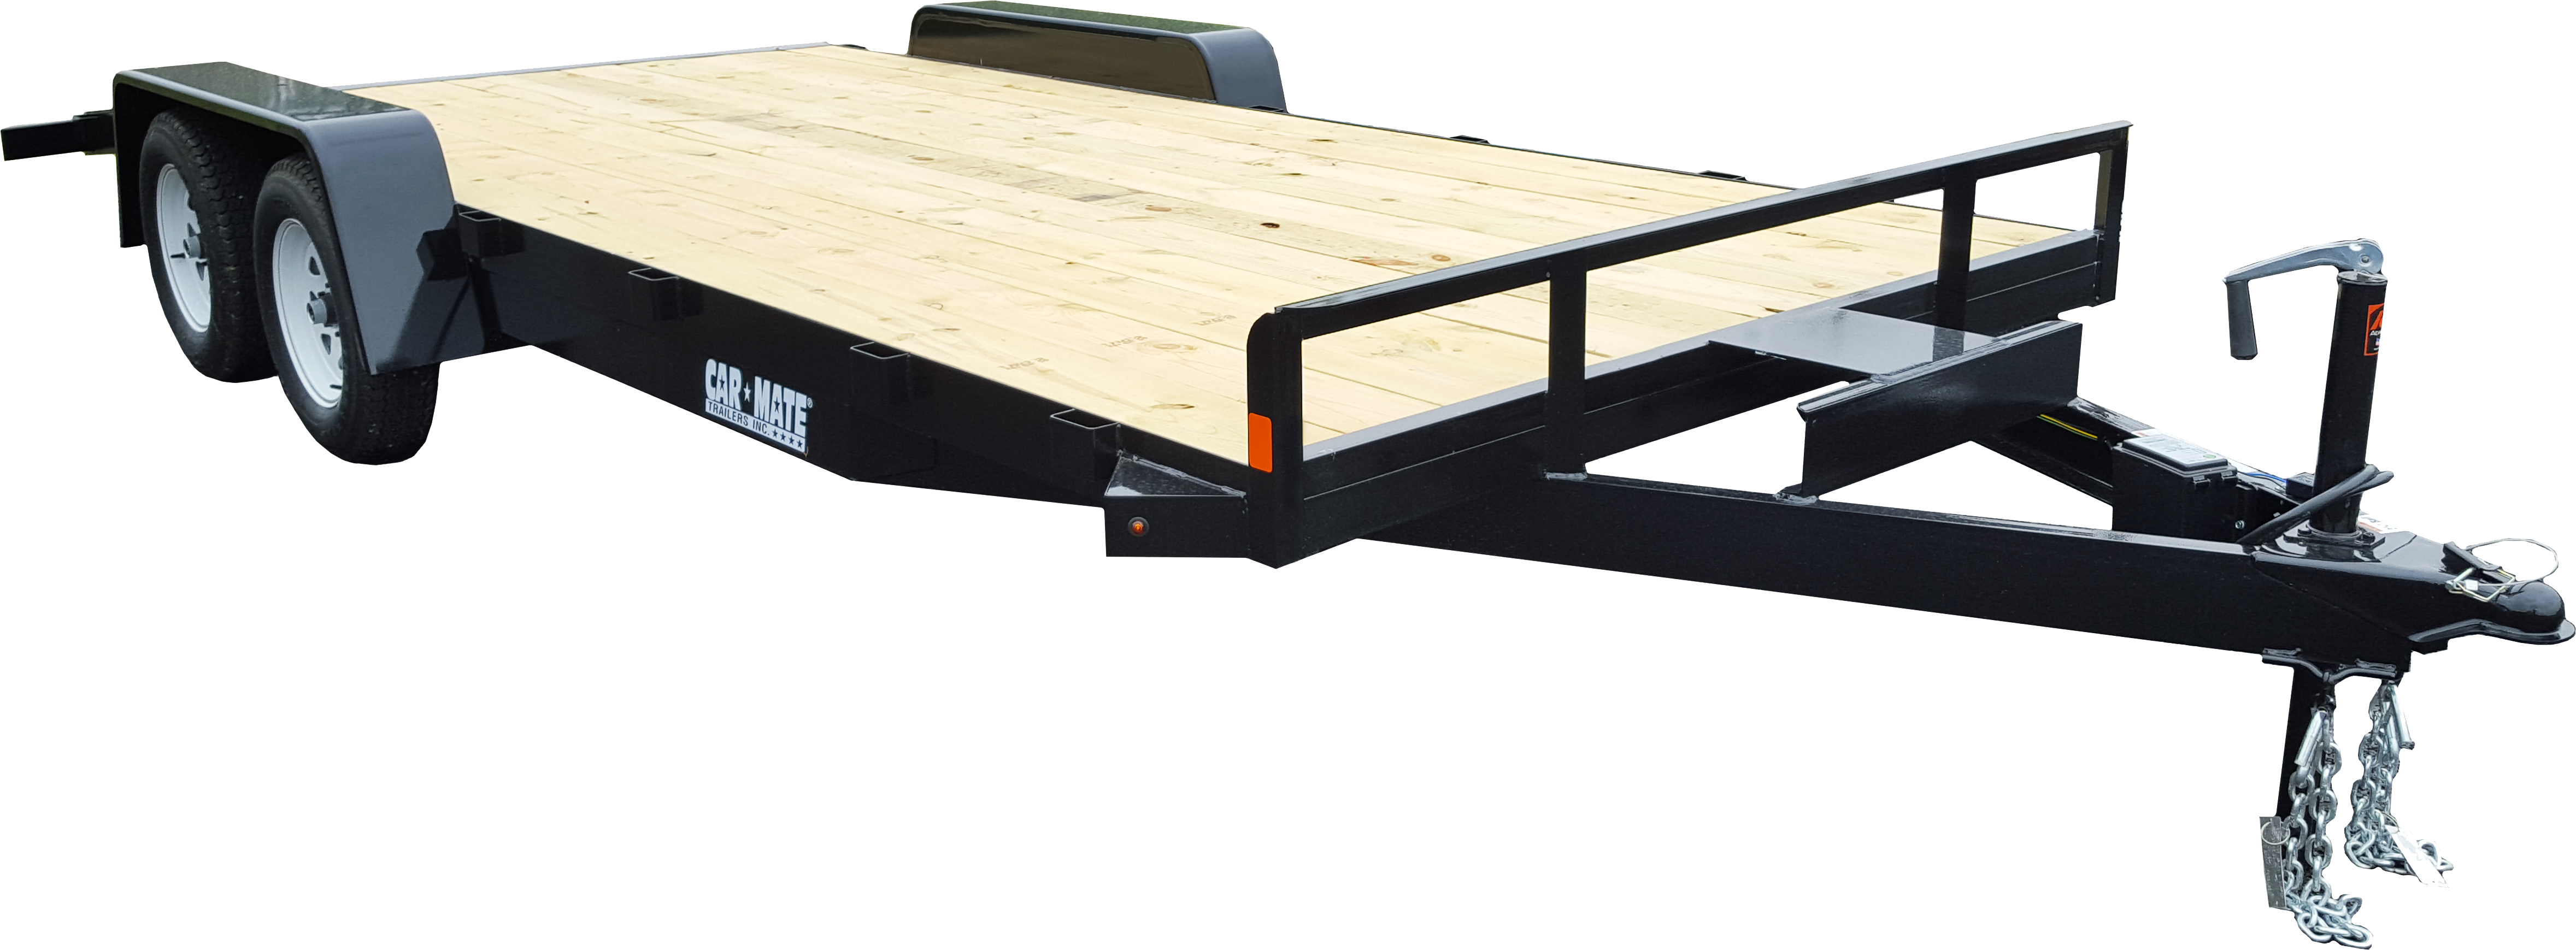 Equipment Trailer Angle Iron Open Car Full Treated Plank Deck